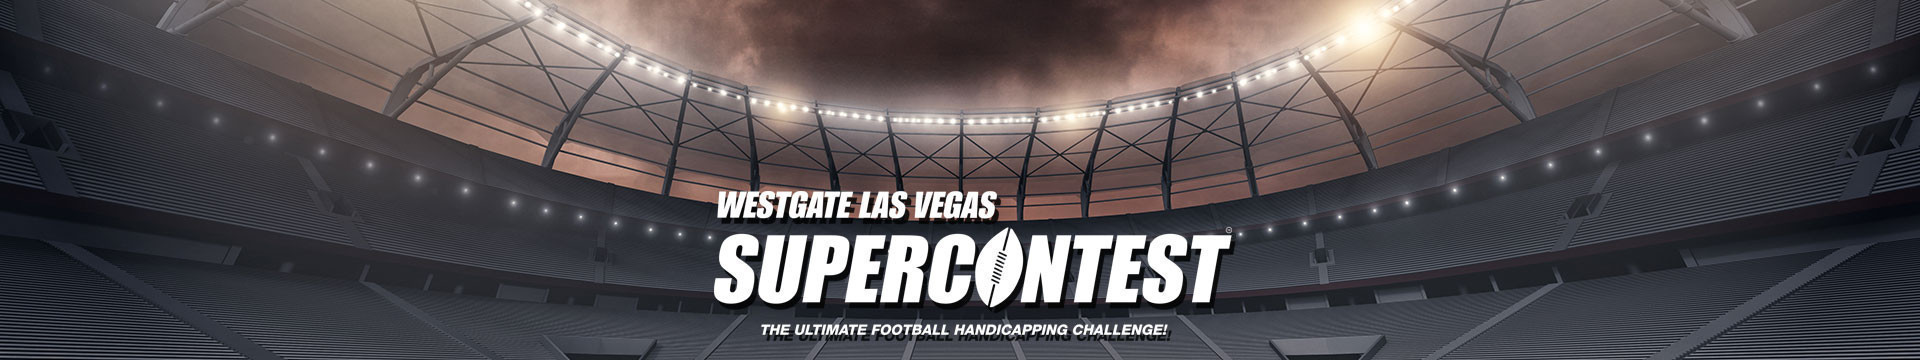 Supercontest Payouts at our Las Vegas Hotel and Casino | SuperContest Logo